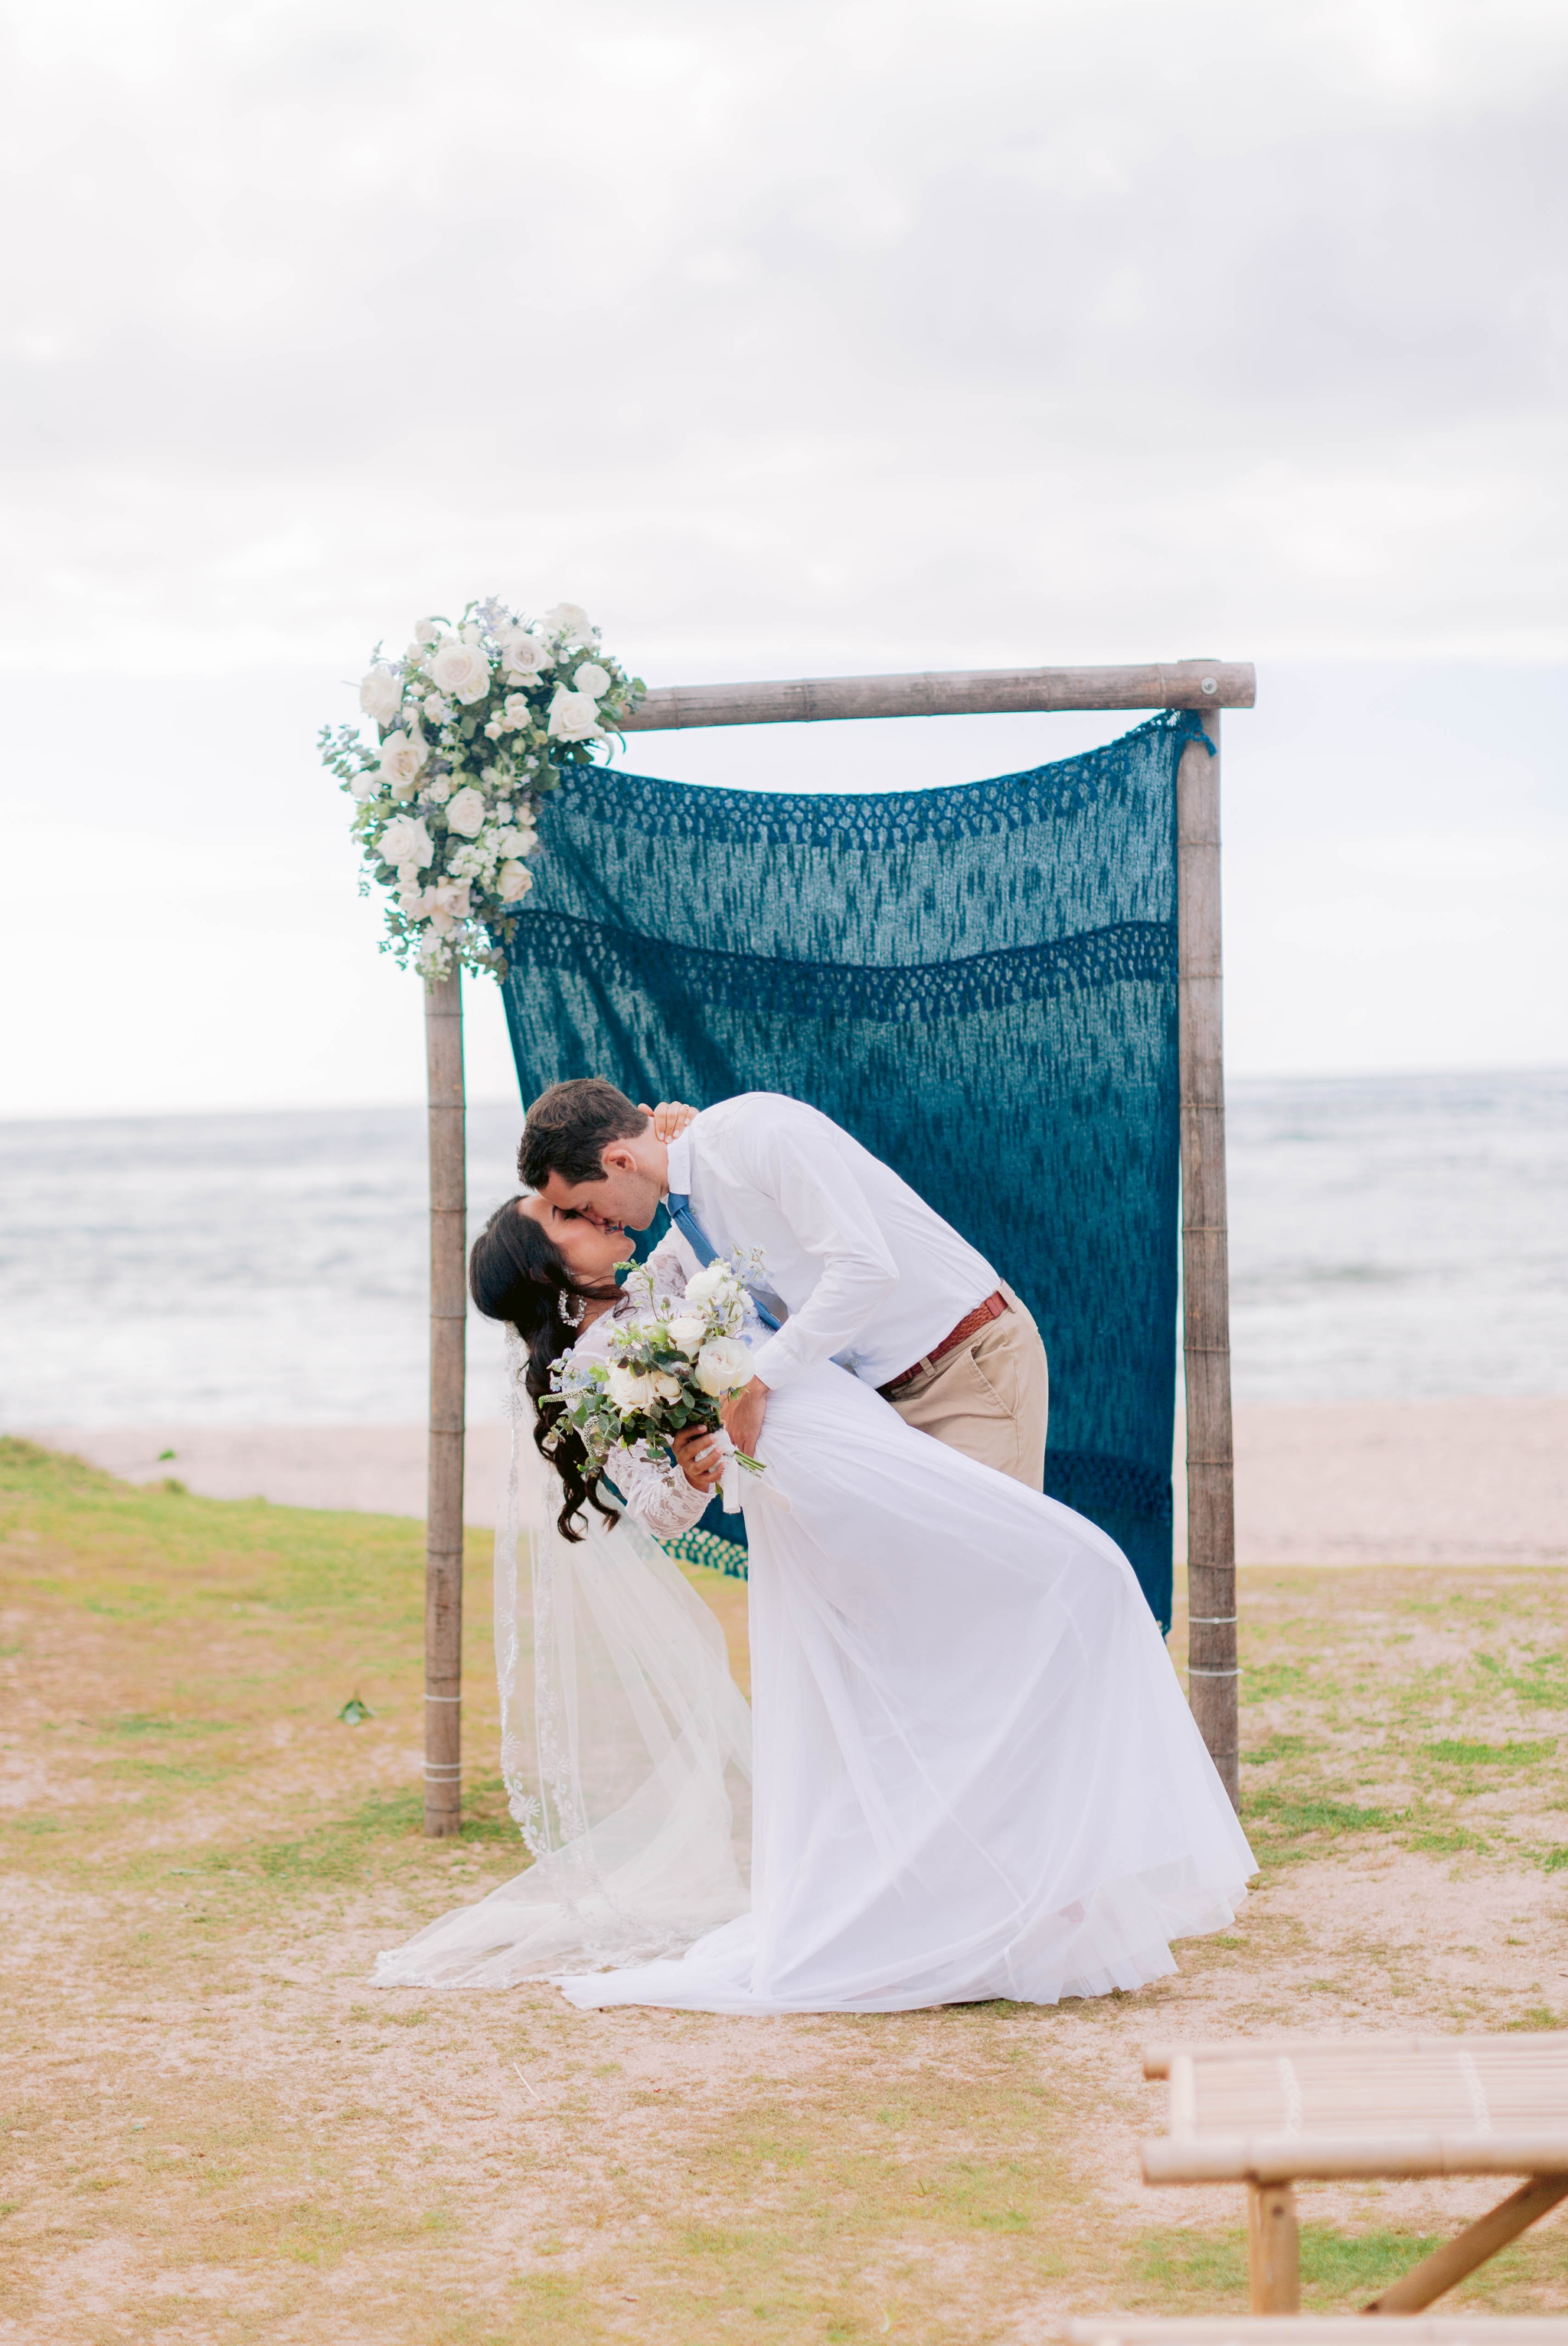 The first kiss between bride and broom at the ceremony Ana + Elijah - Wedding at Loulu Palm in Haleiwa, HI - Oahu Hawaii Wedding Photographer